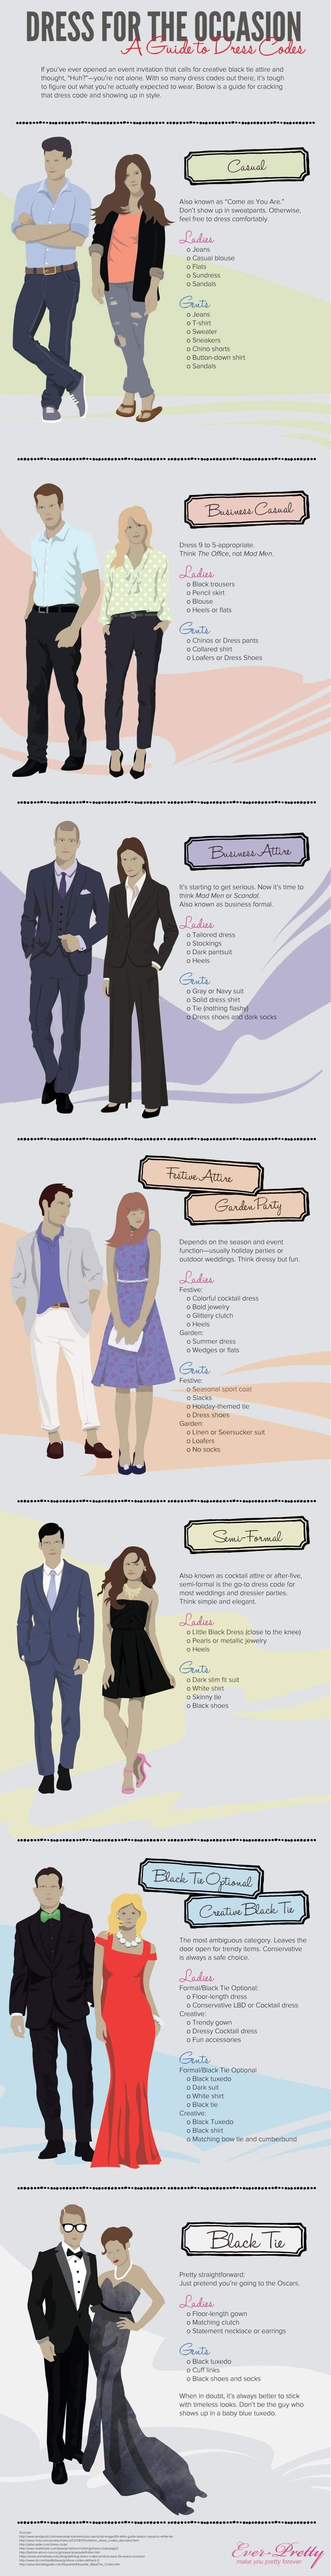 Dress For The Occasion A Guide To Dress Codes #Infographic